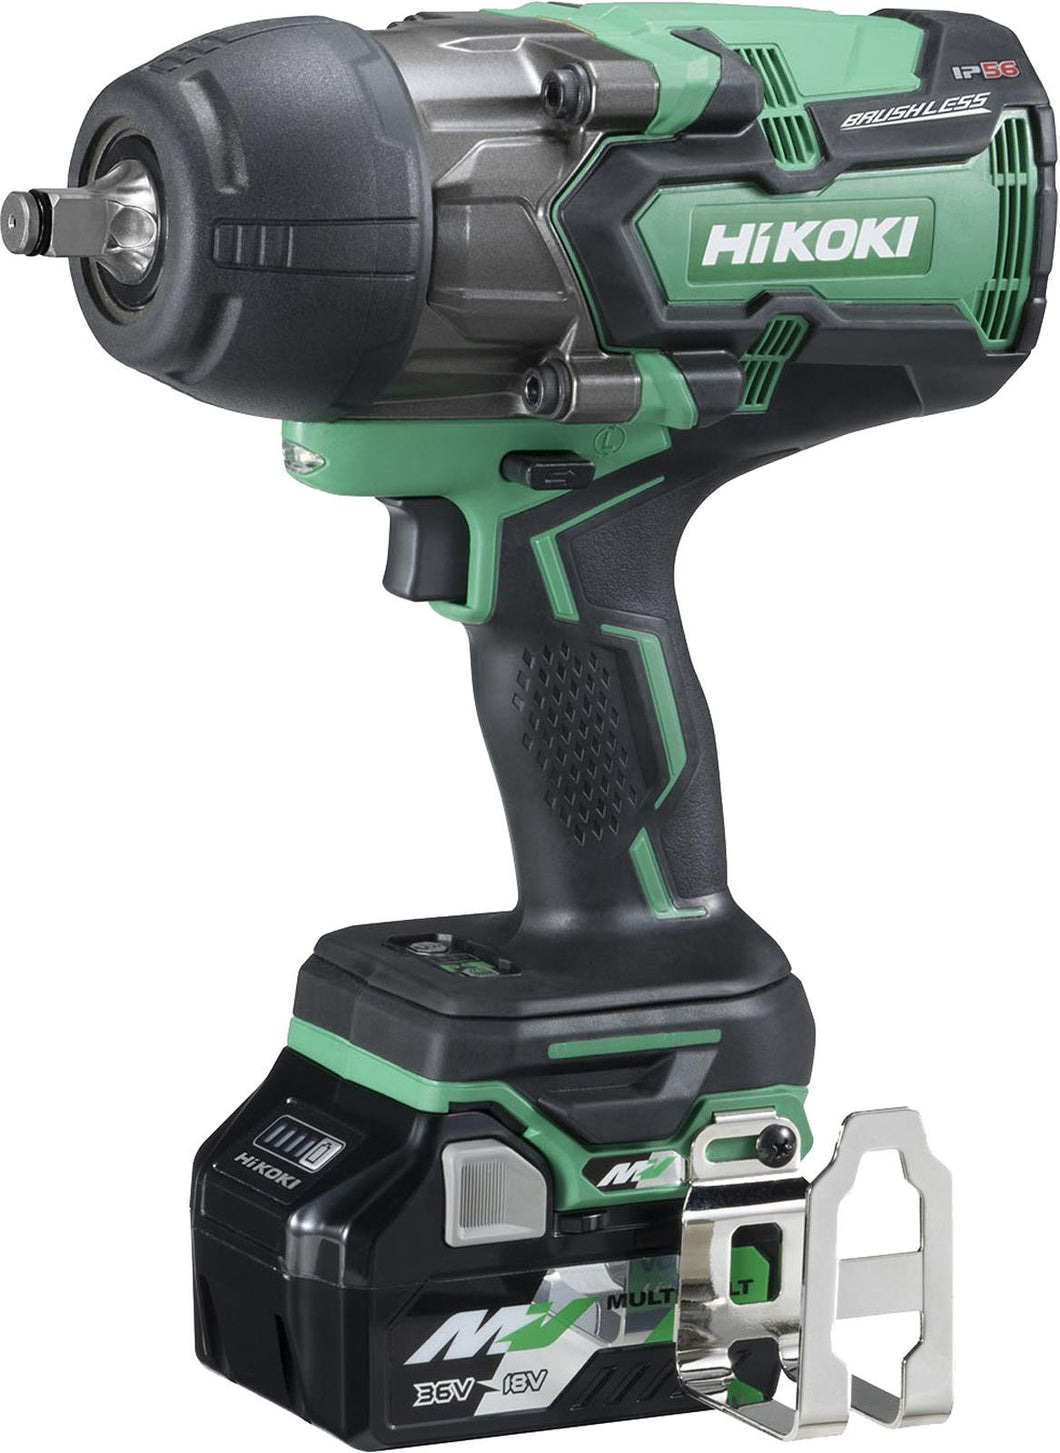 HIKOKI 36V MULTI VOLT BRUSHLESS 1/2